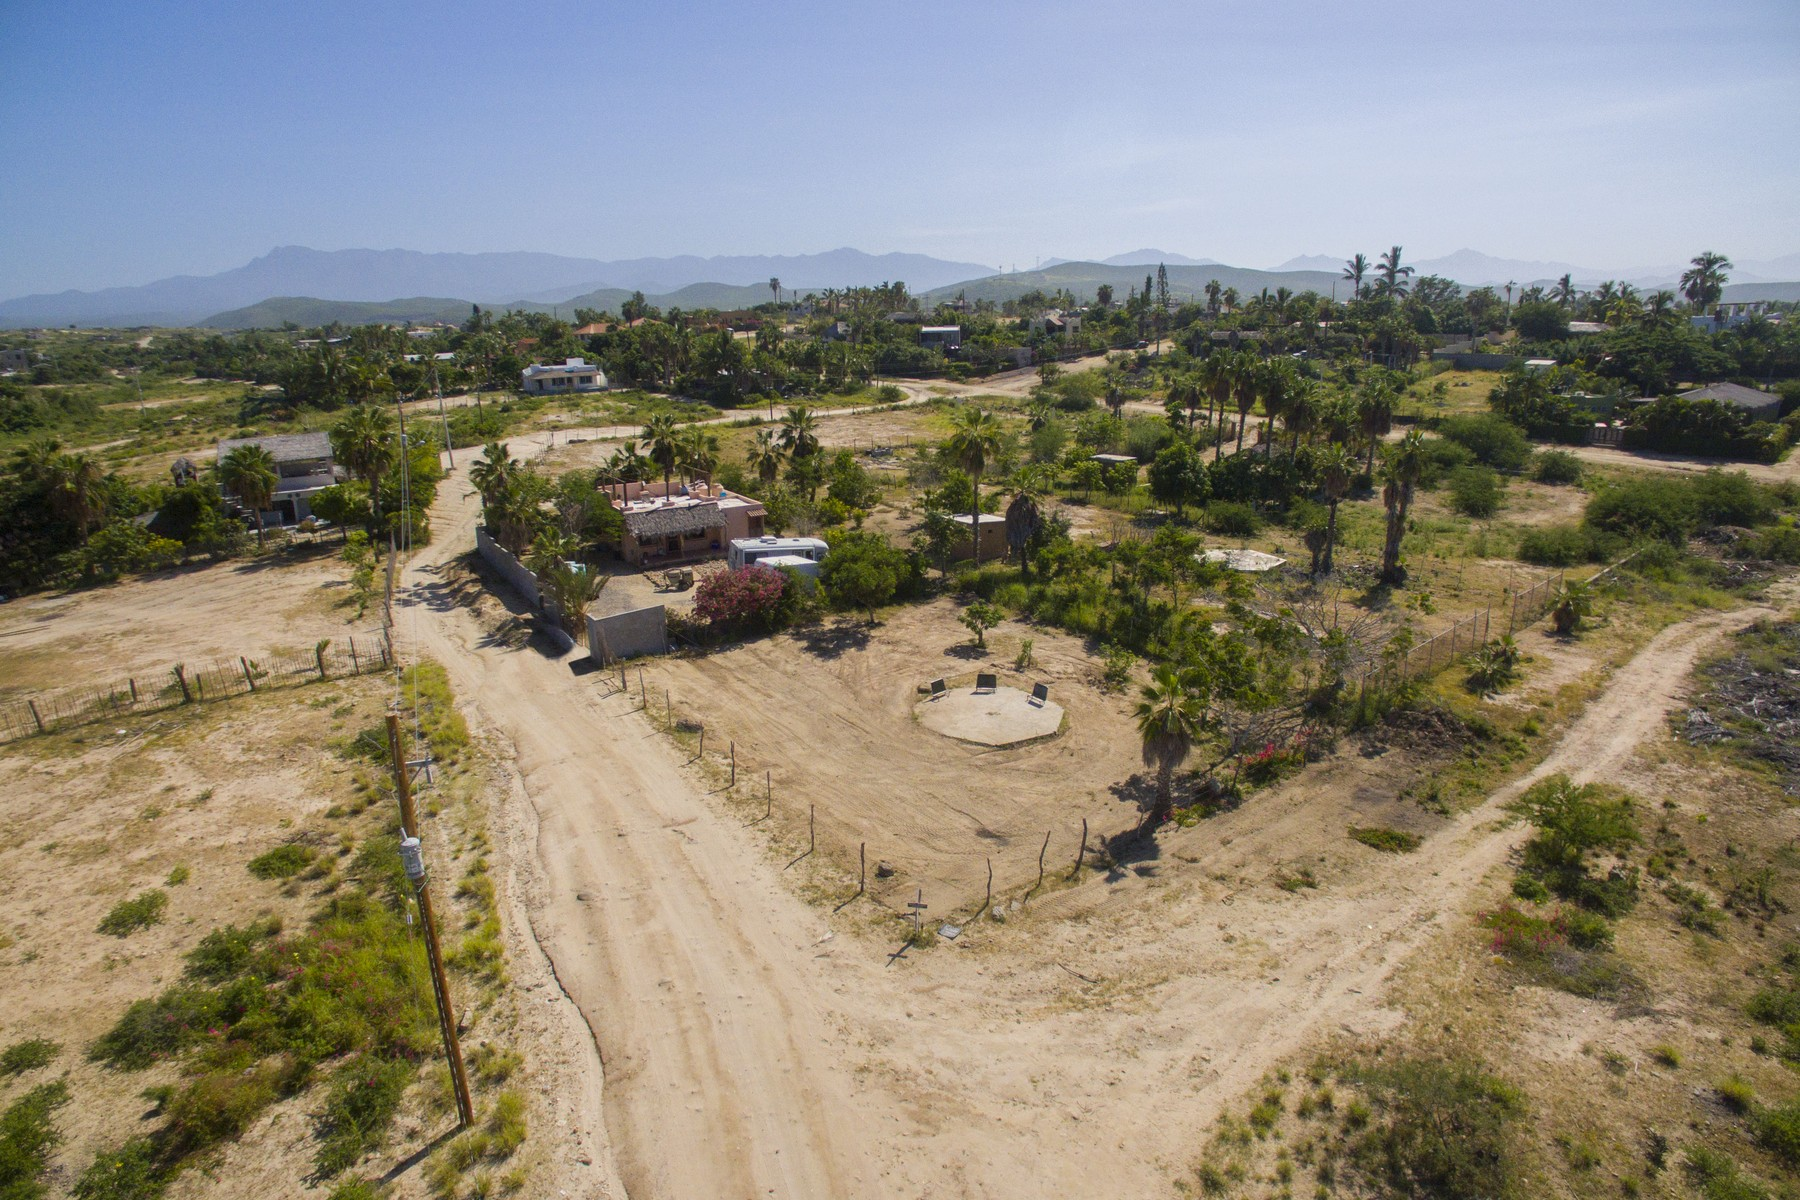 Land for Sale at Lote Palapa Las Brisas Todos Santos, Baja California Sur 23300 Mexico